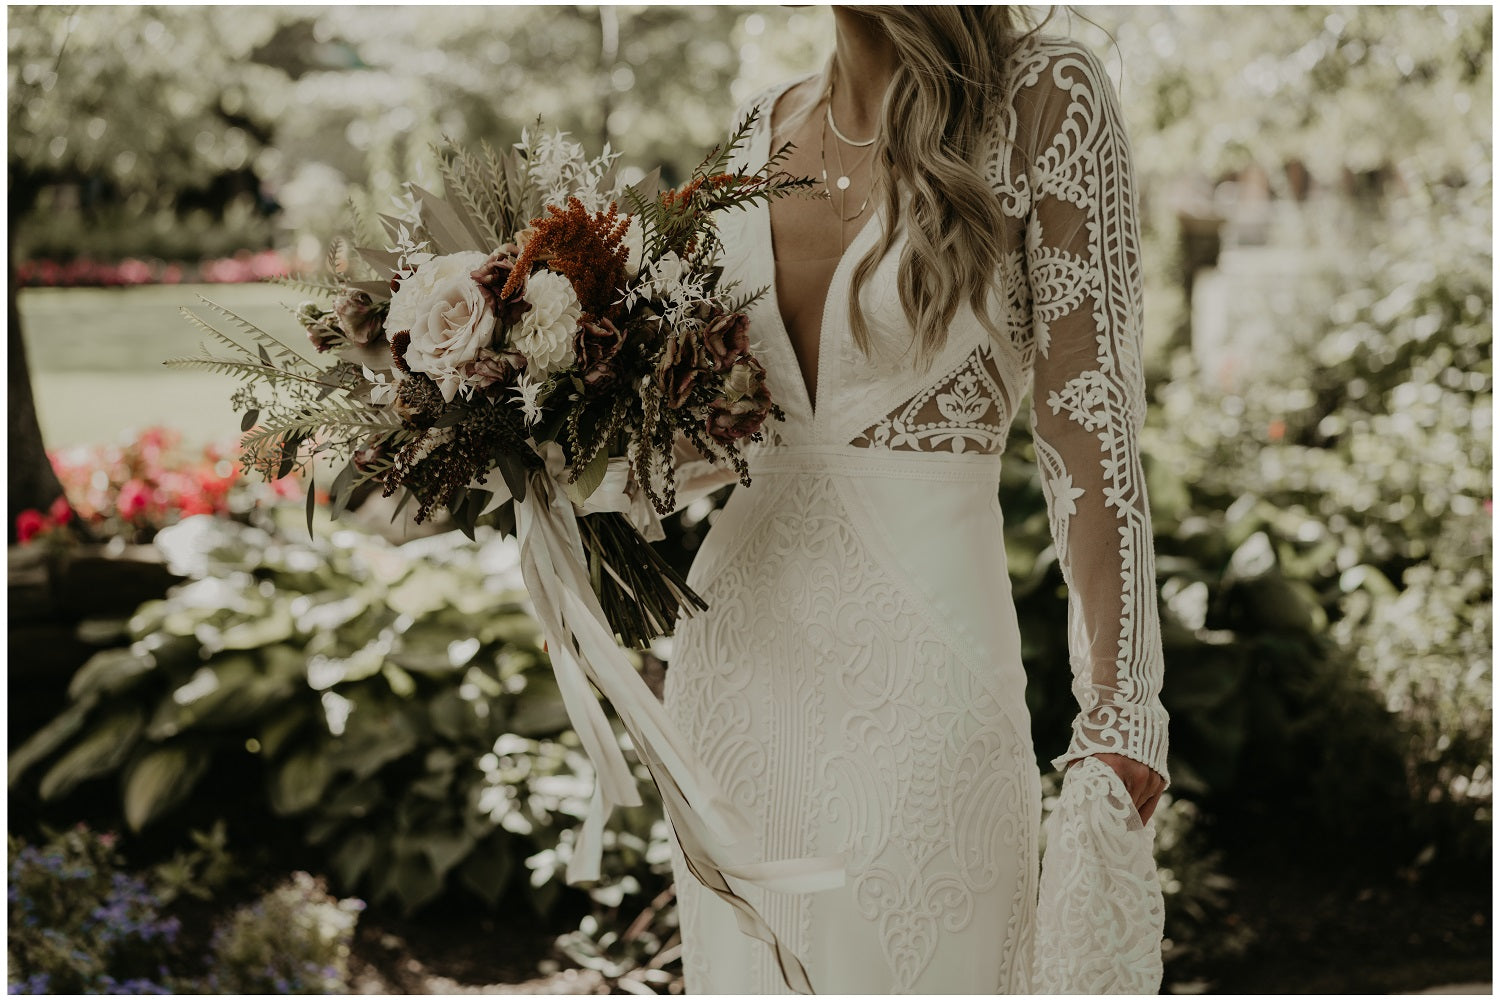 Boho Lace dress by lover society with beige and white bouquet